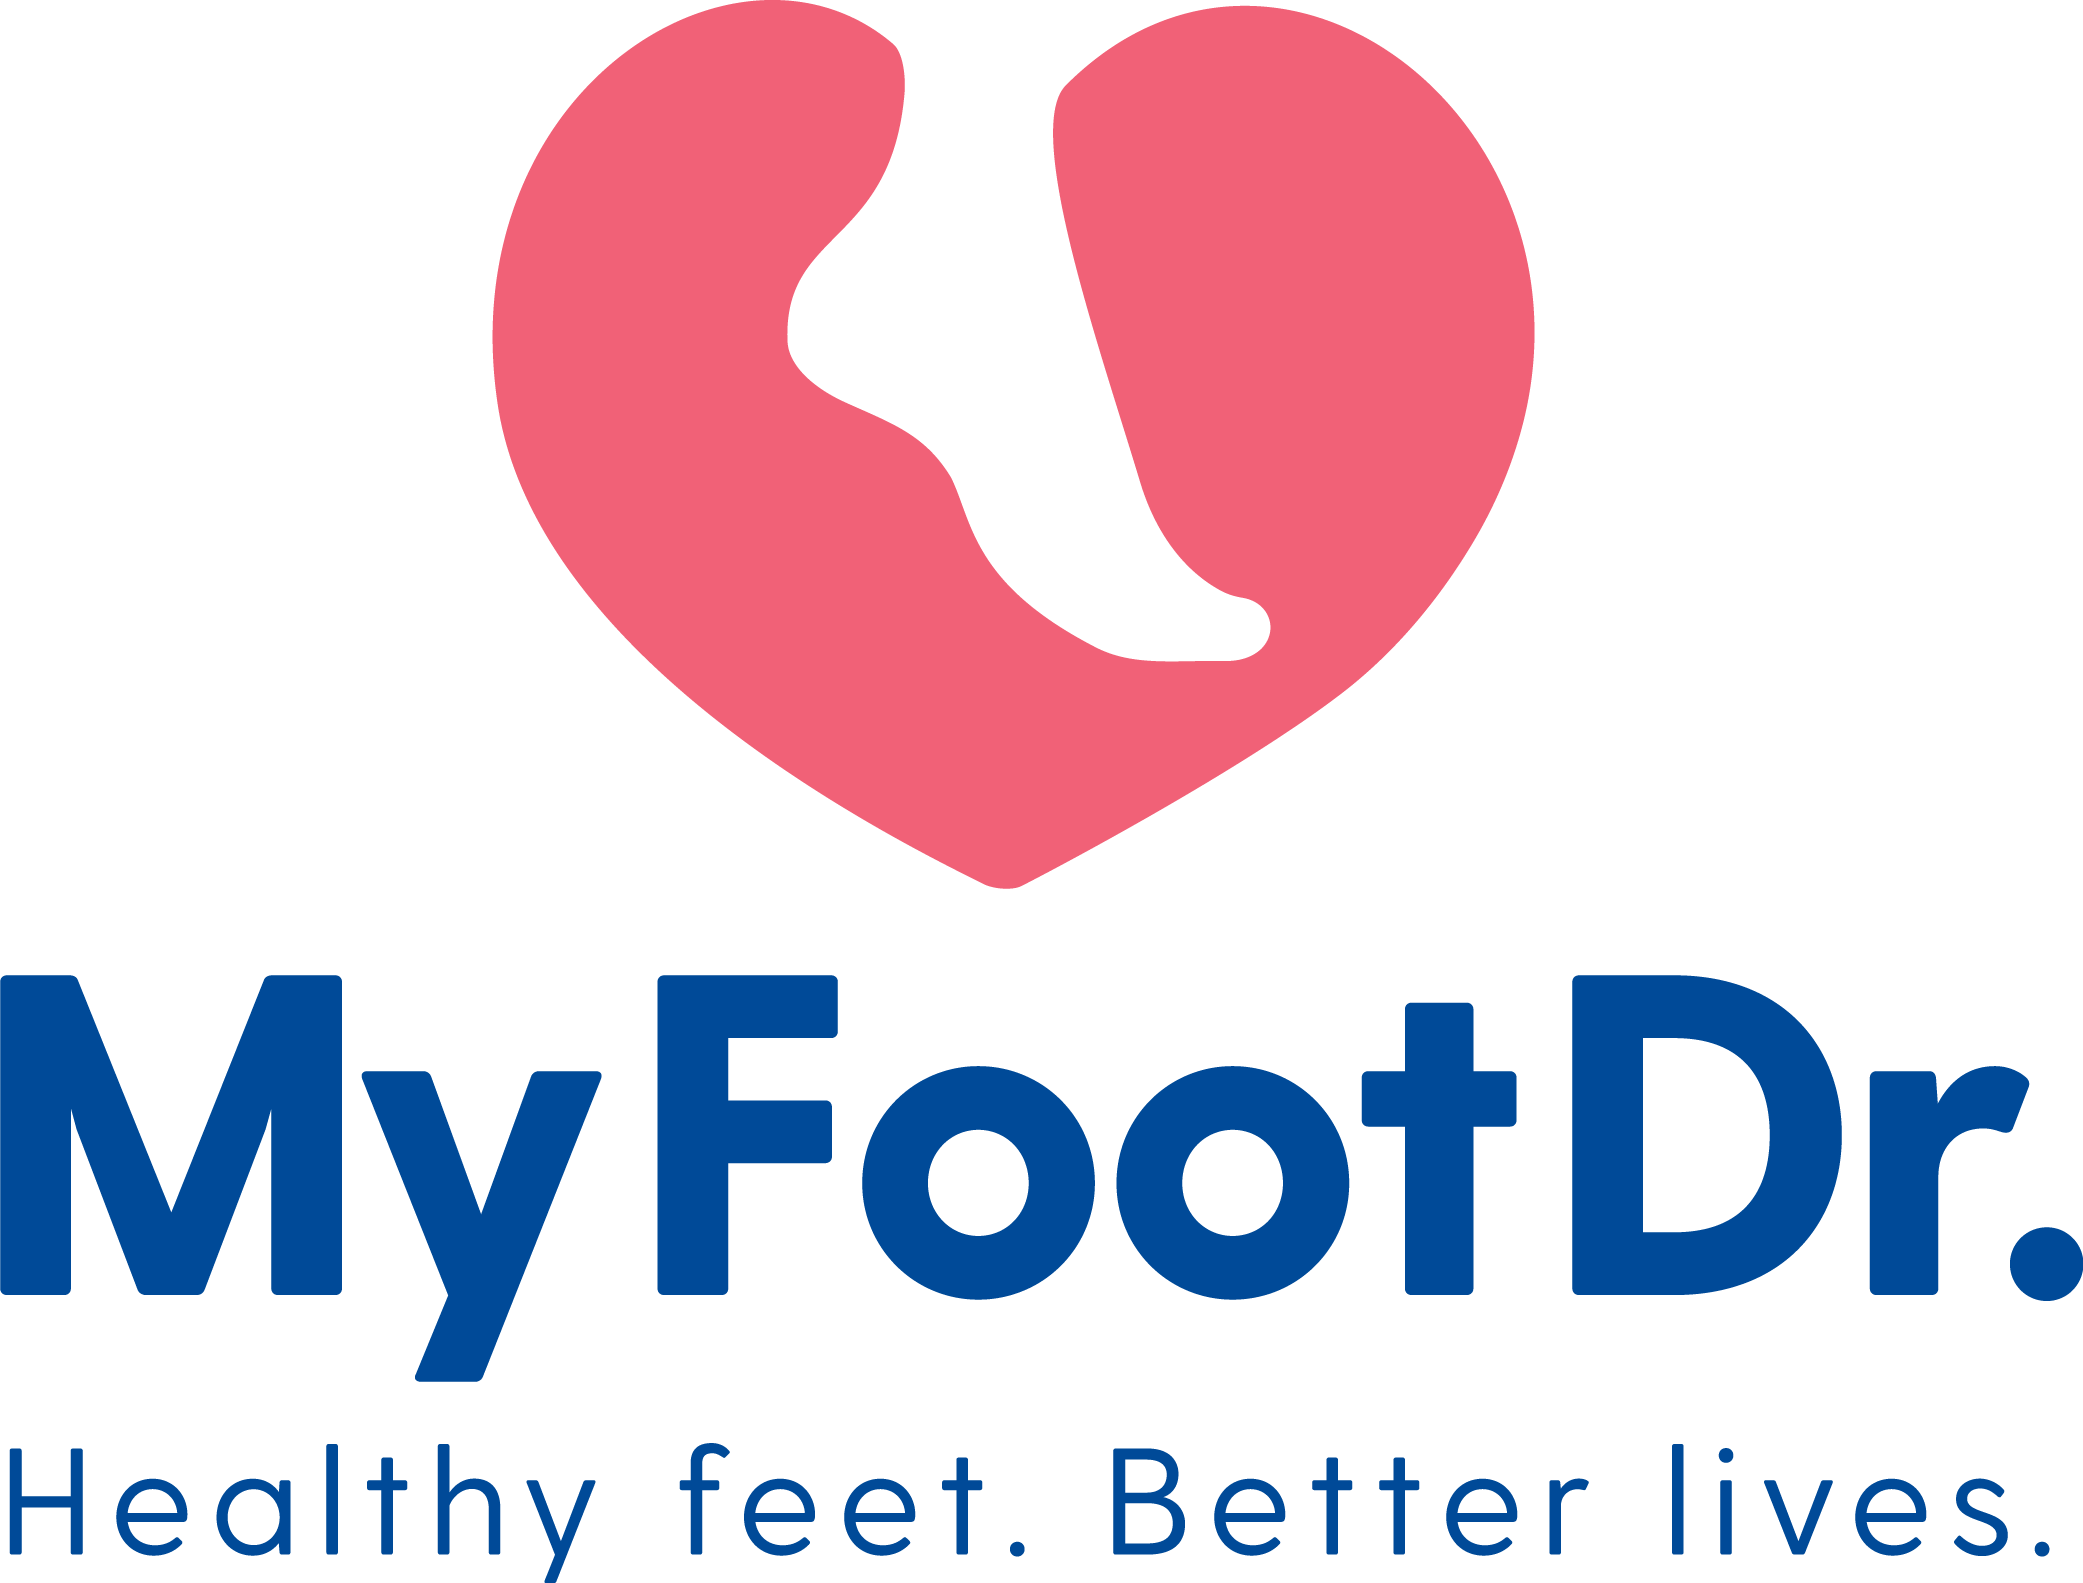 MyFootDr-Stacked-Colour.png